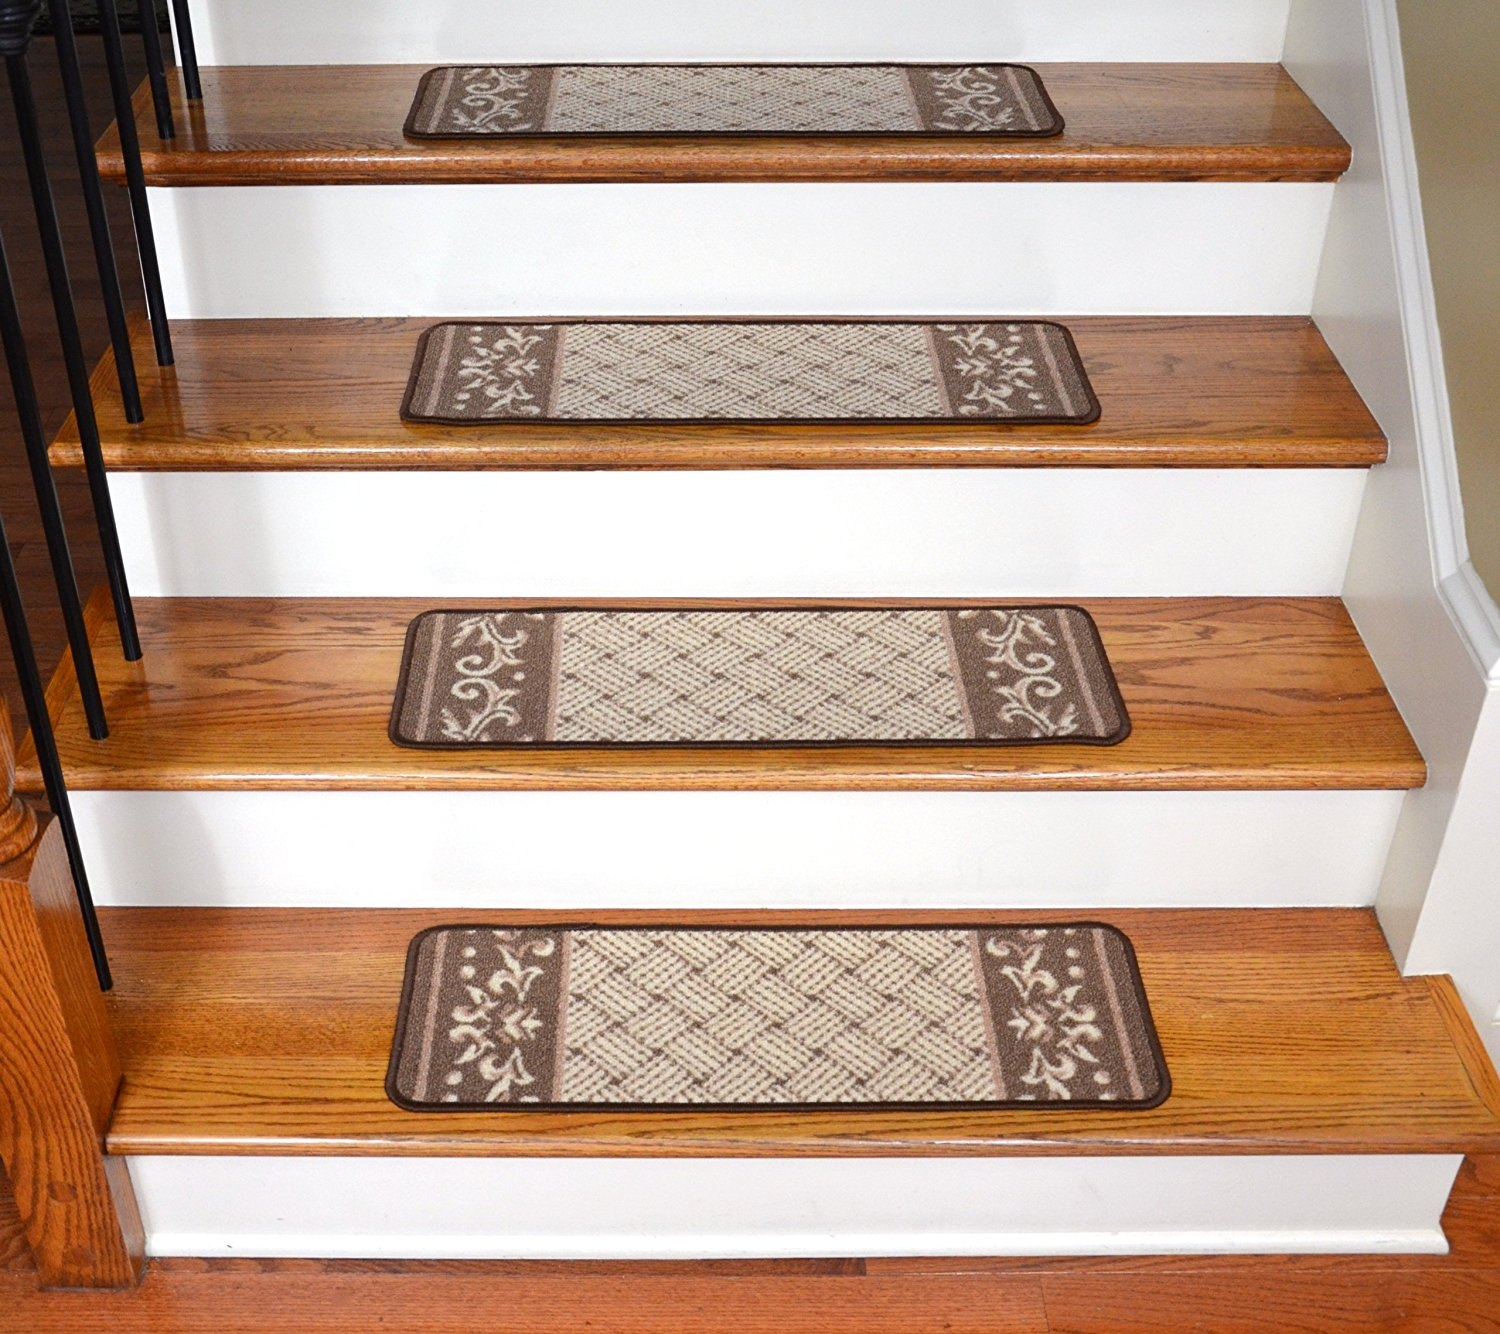 Amazon Carpet Stair Treads Caramel Scroll Border Regarding Traction Pads For Stairs (Image 2 of 15)